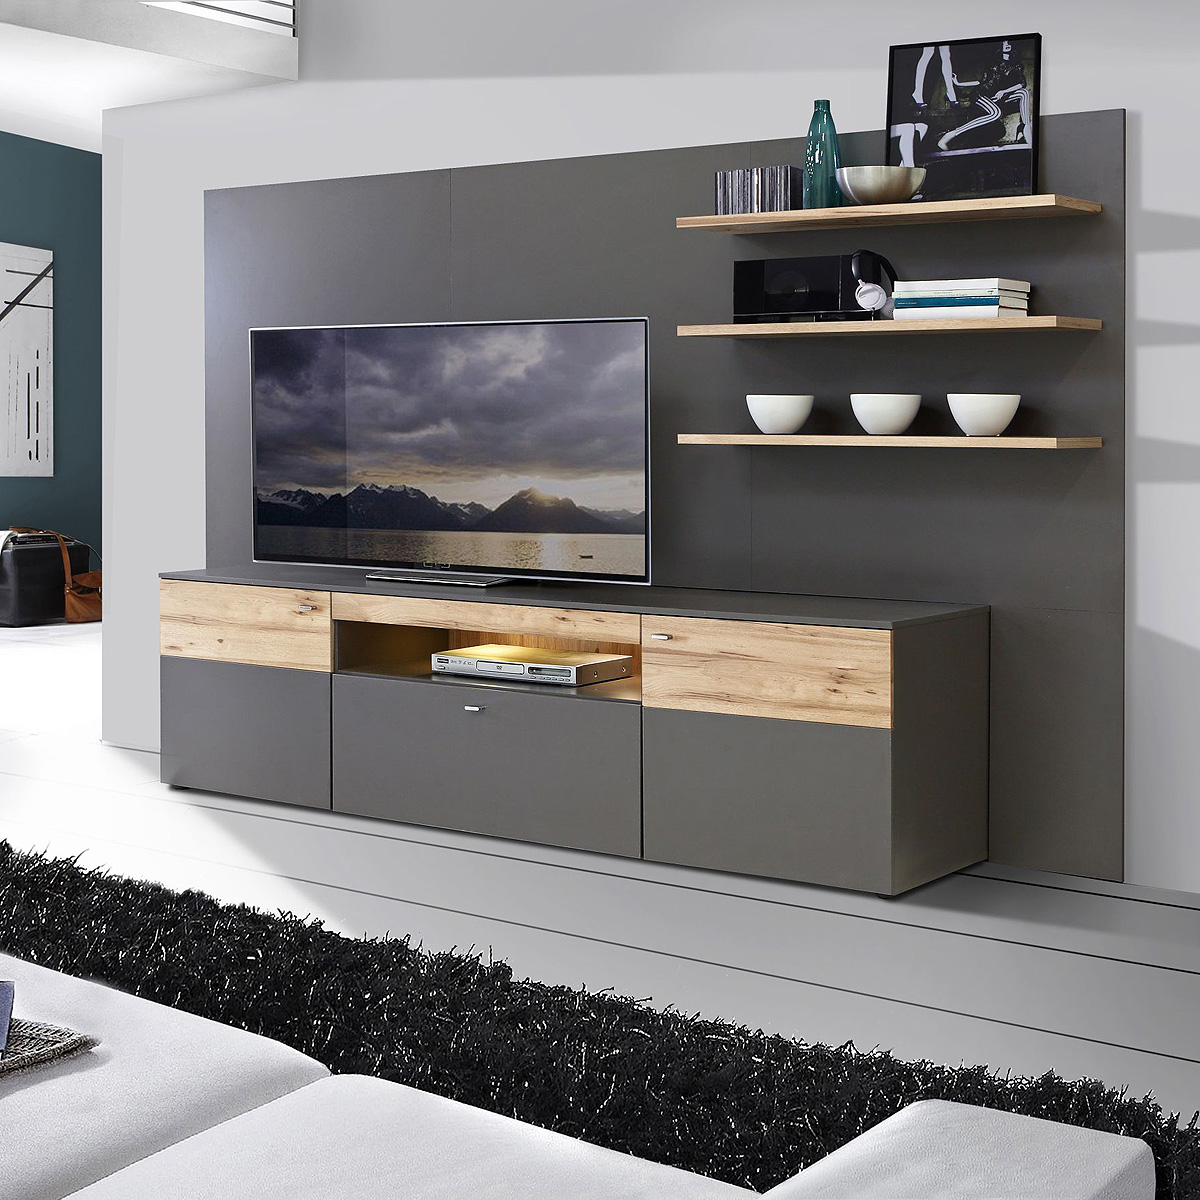 mediacenter como wohnwand wohnzimmer uni wolfram grau und. Black Bedroom Furniture Sets. Home Design Ideas